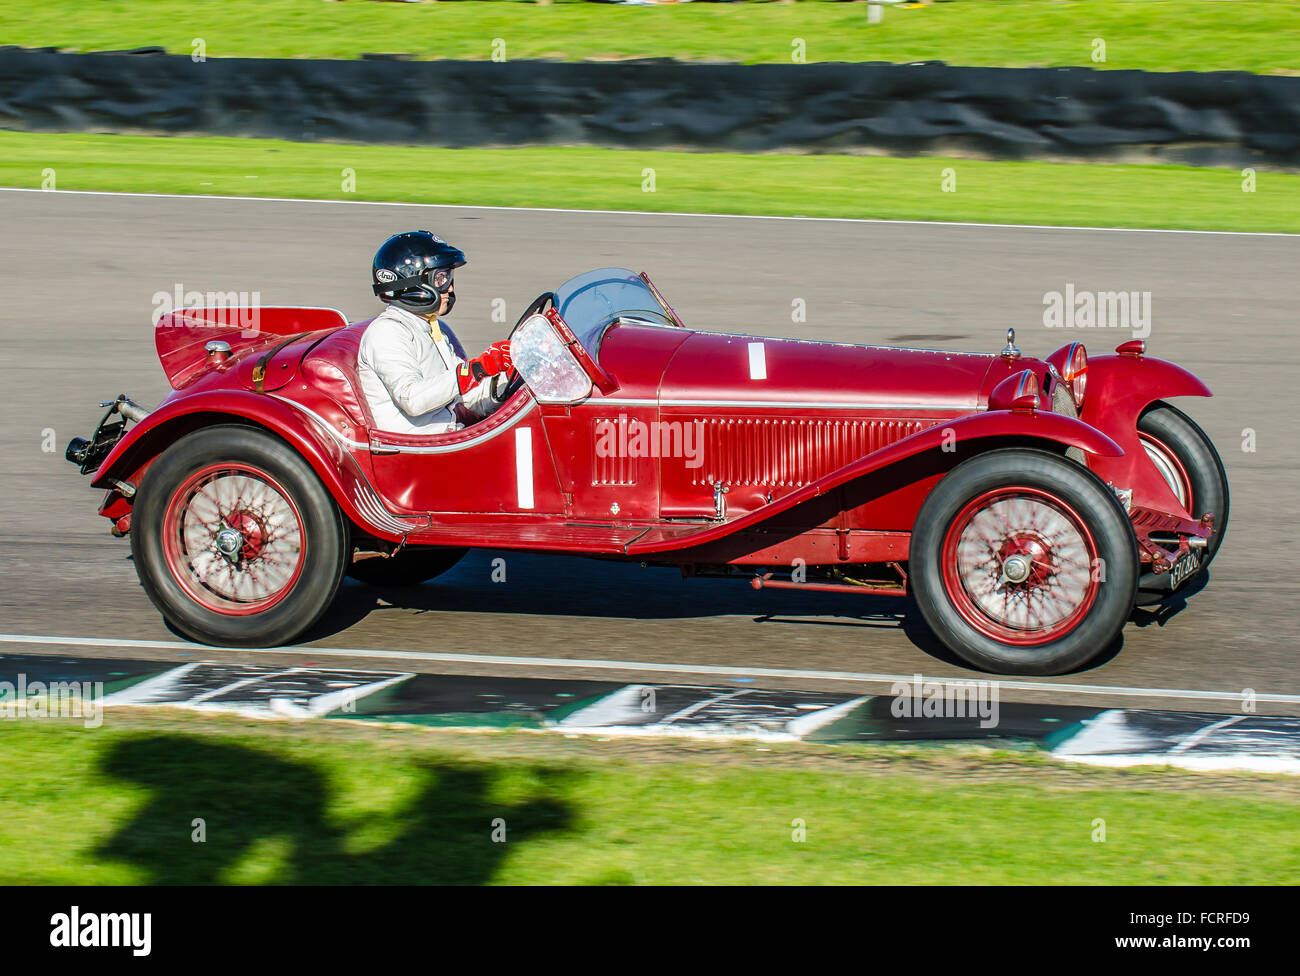 A 1931 Alfa Romeo 8C 2300 MM Owned By Alain De Cadenet And Driven By Him